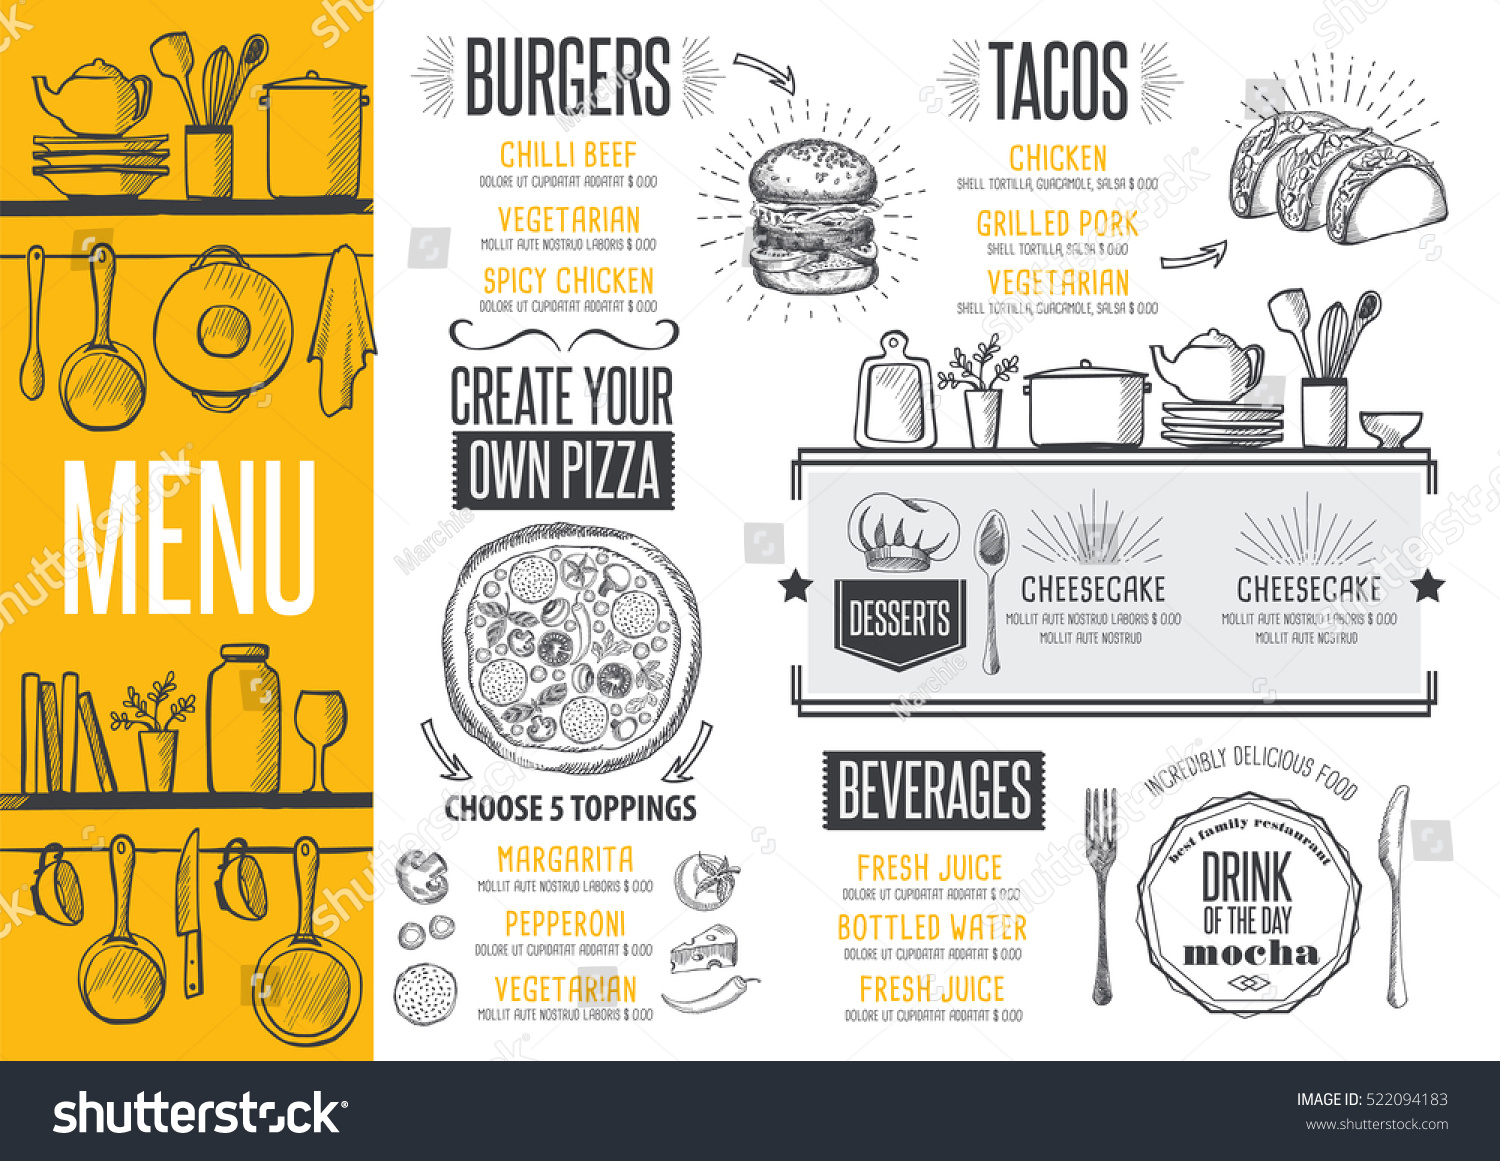 Kitchen Layout Design Tool Cafe Menu Food Placemat Brochure Restaurant Stock Vector